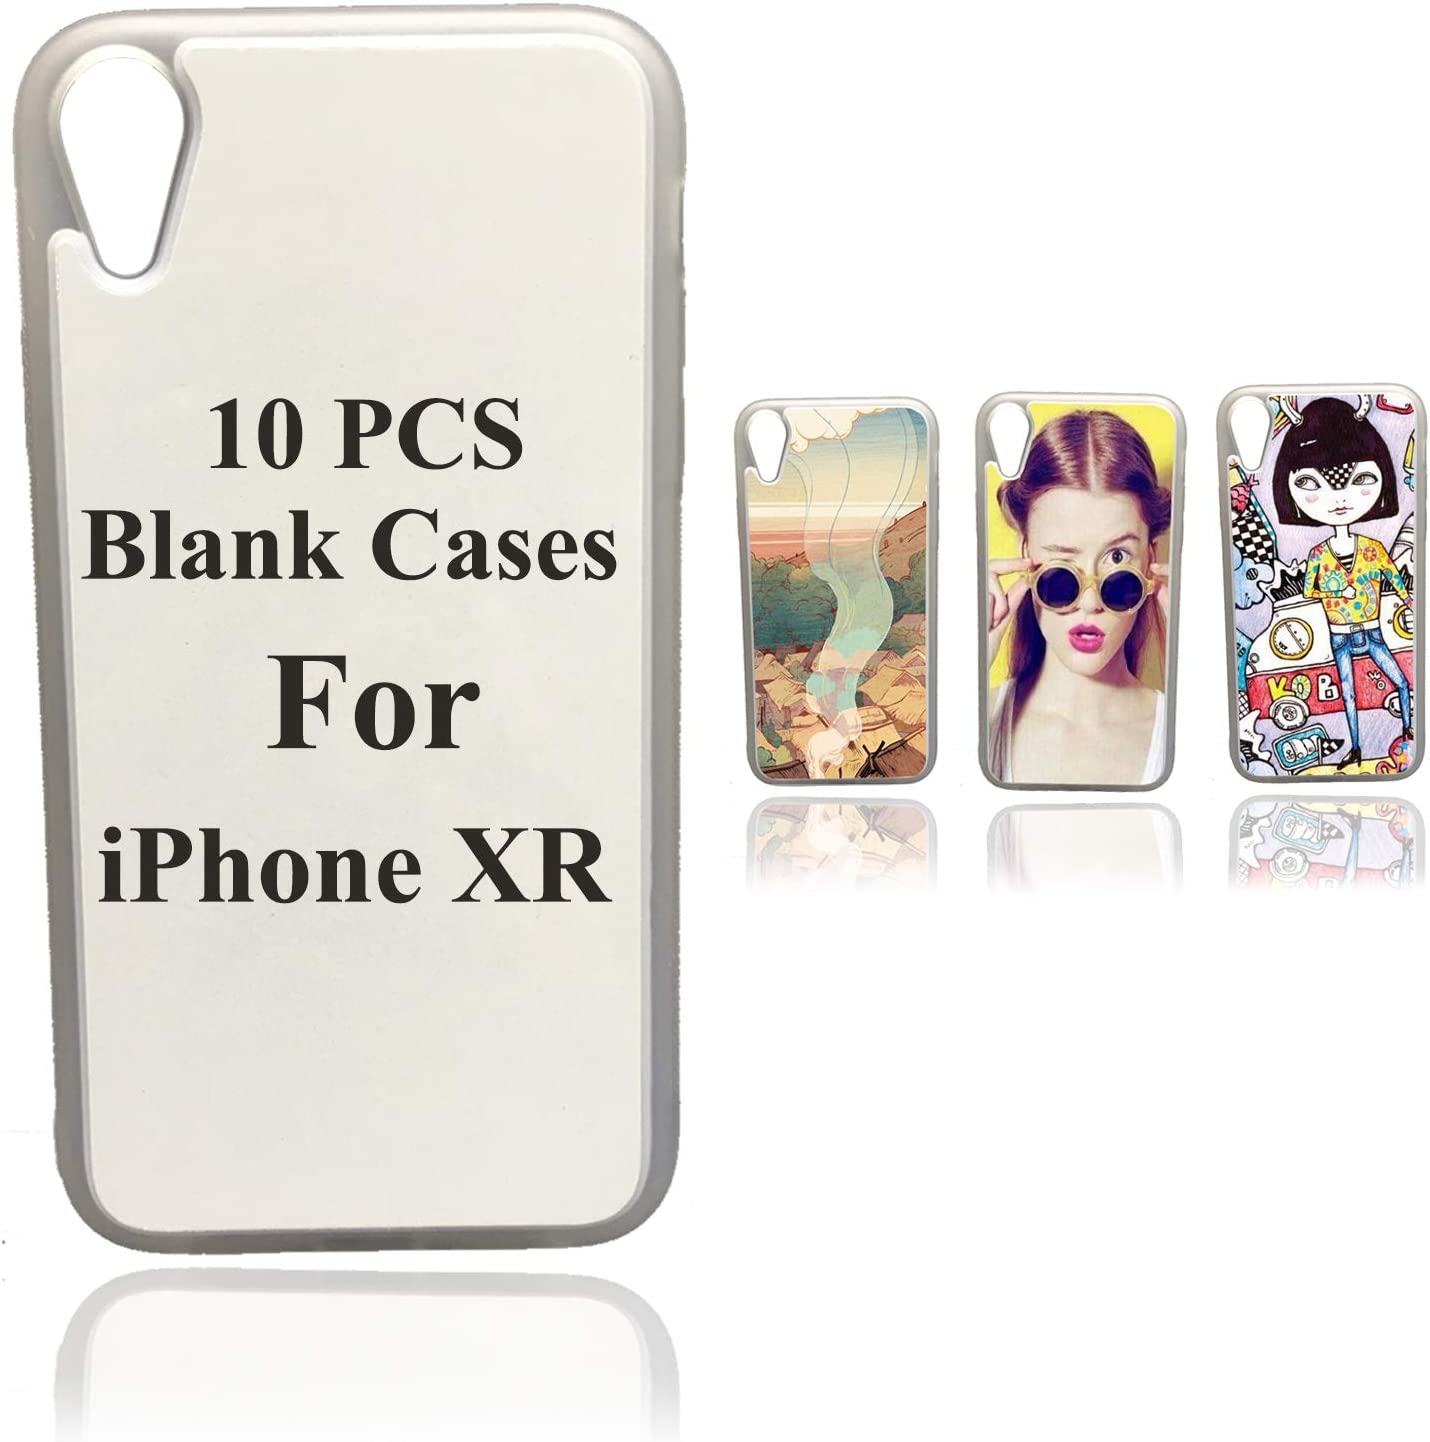 10PCS Sublimation Blanks Phone Case Covers Soft Rubber Compatible with Apple iPhone XR 6.1 Inch Printable Phone Case Blank Printable Phone Cases for DIY Clear Transparency Edge